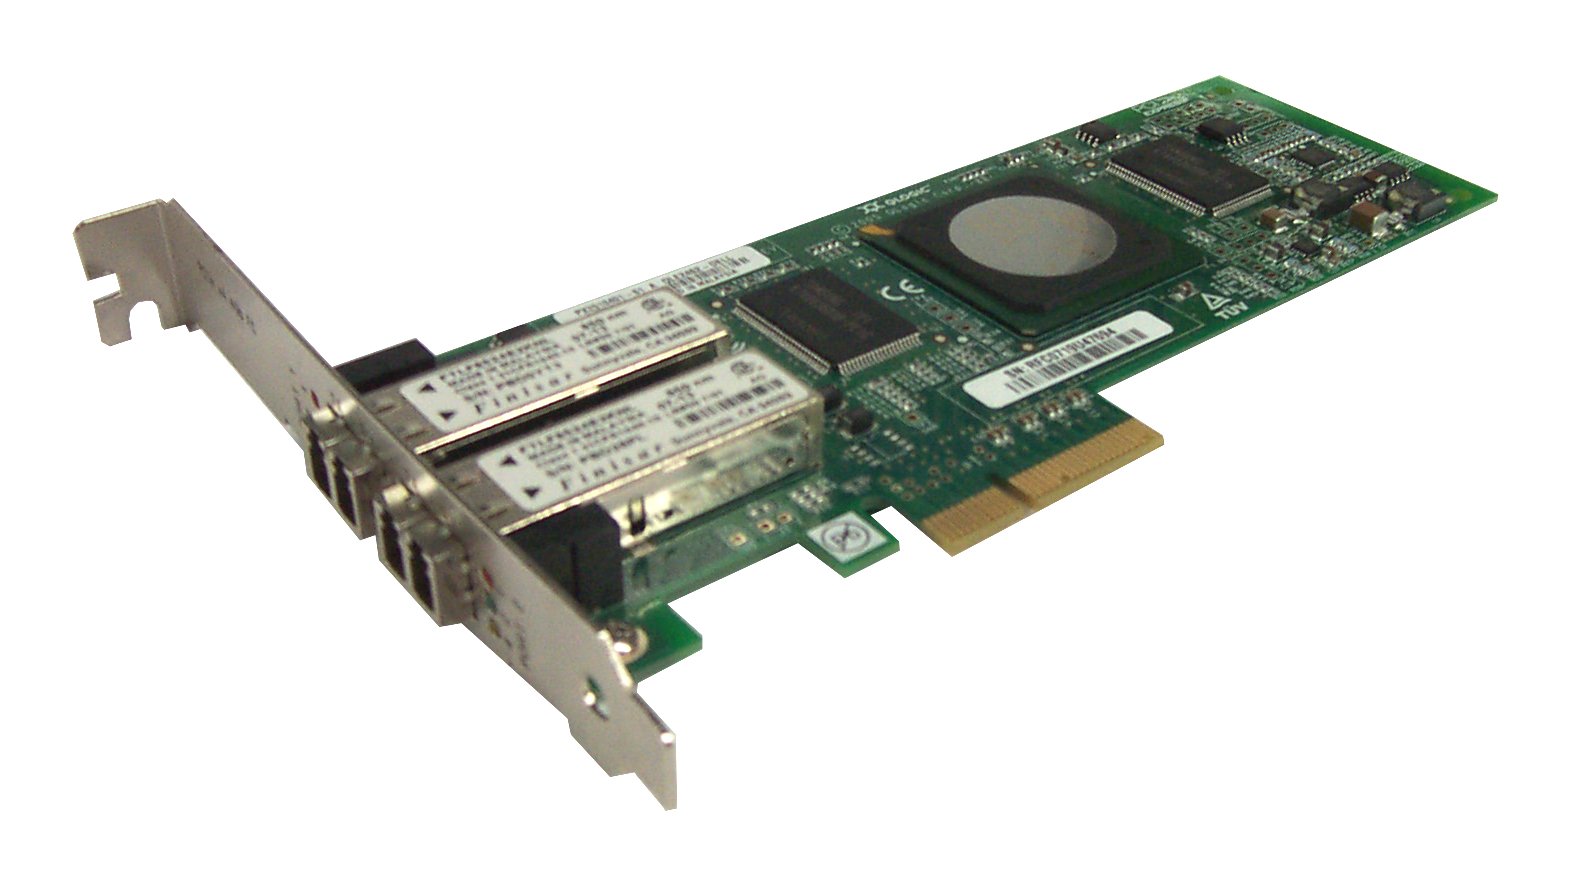 Dell DH226 4GB Dual Port PCIe 4x Fibre Channel Card